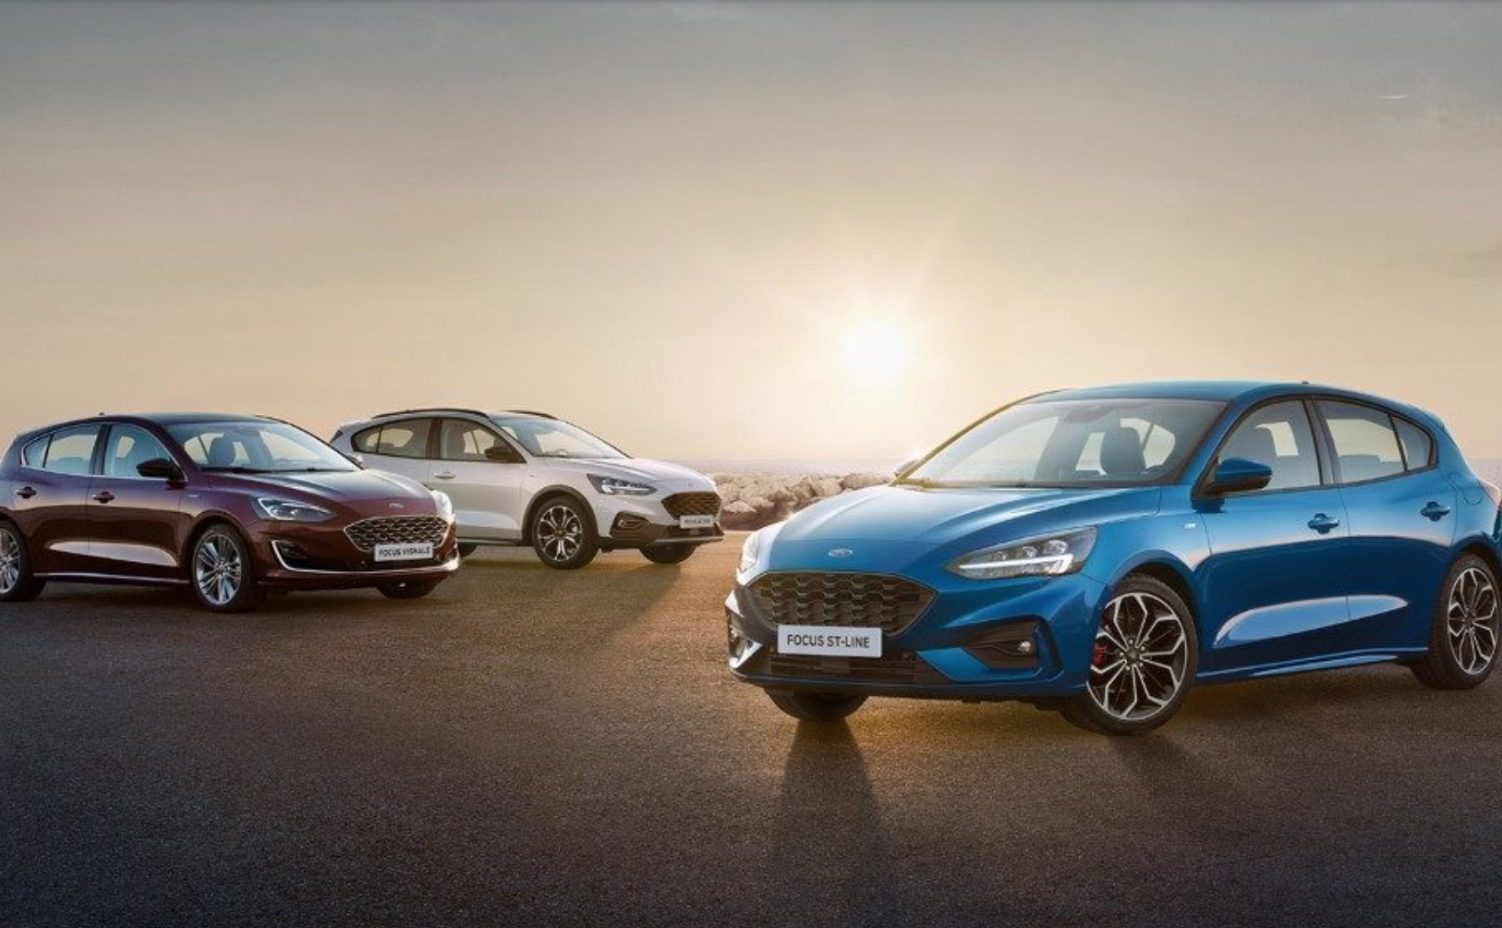 Match your customer data with Facebook users & promote the Ford Focus